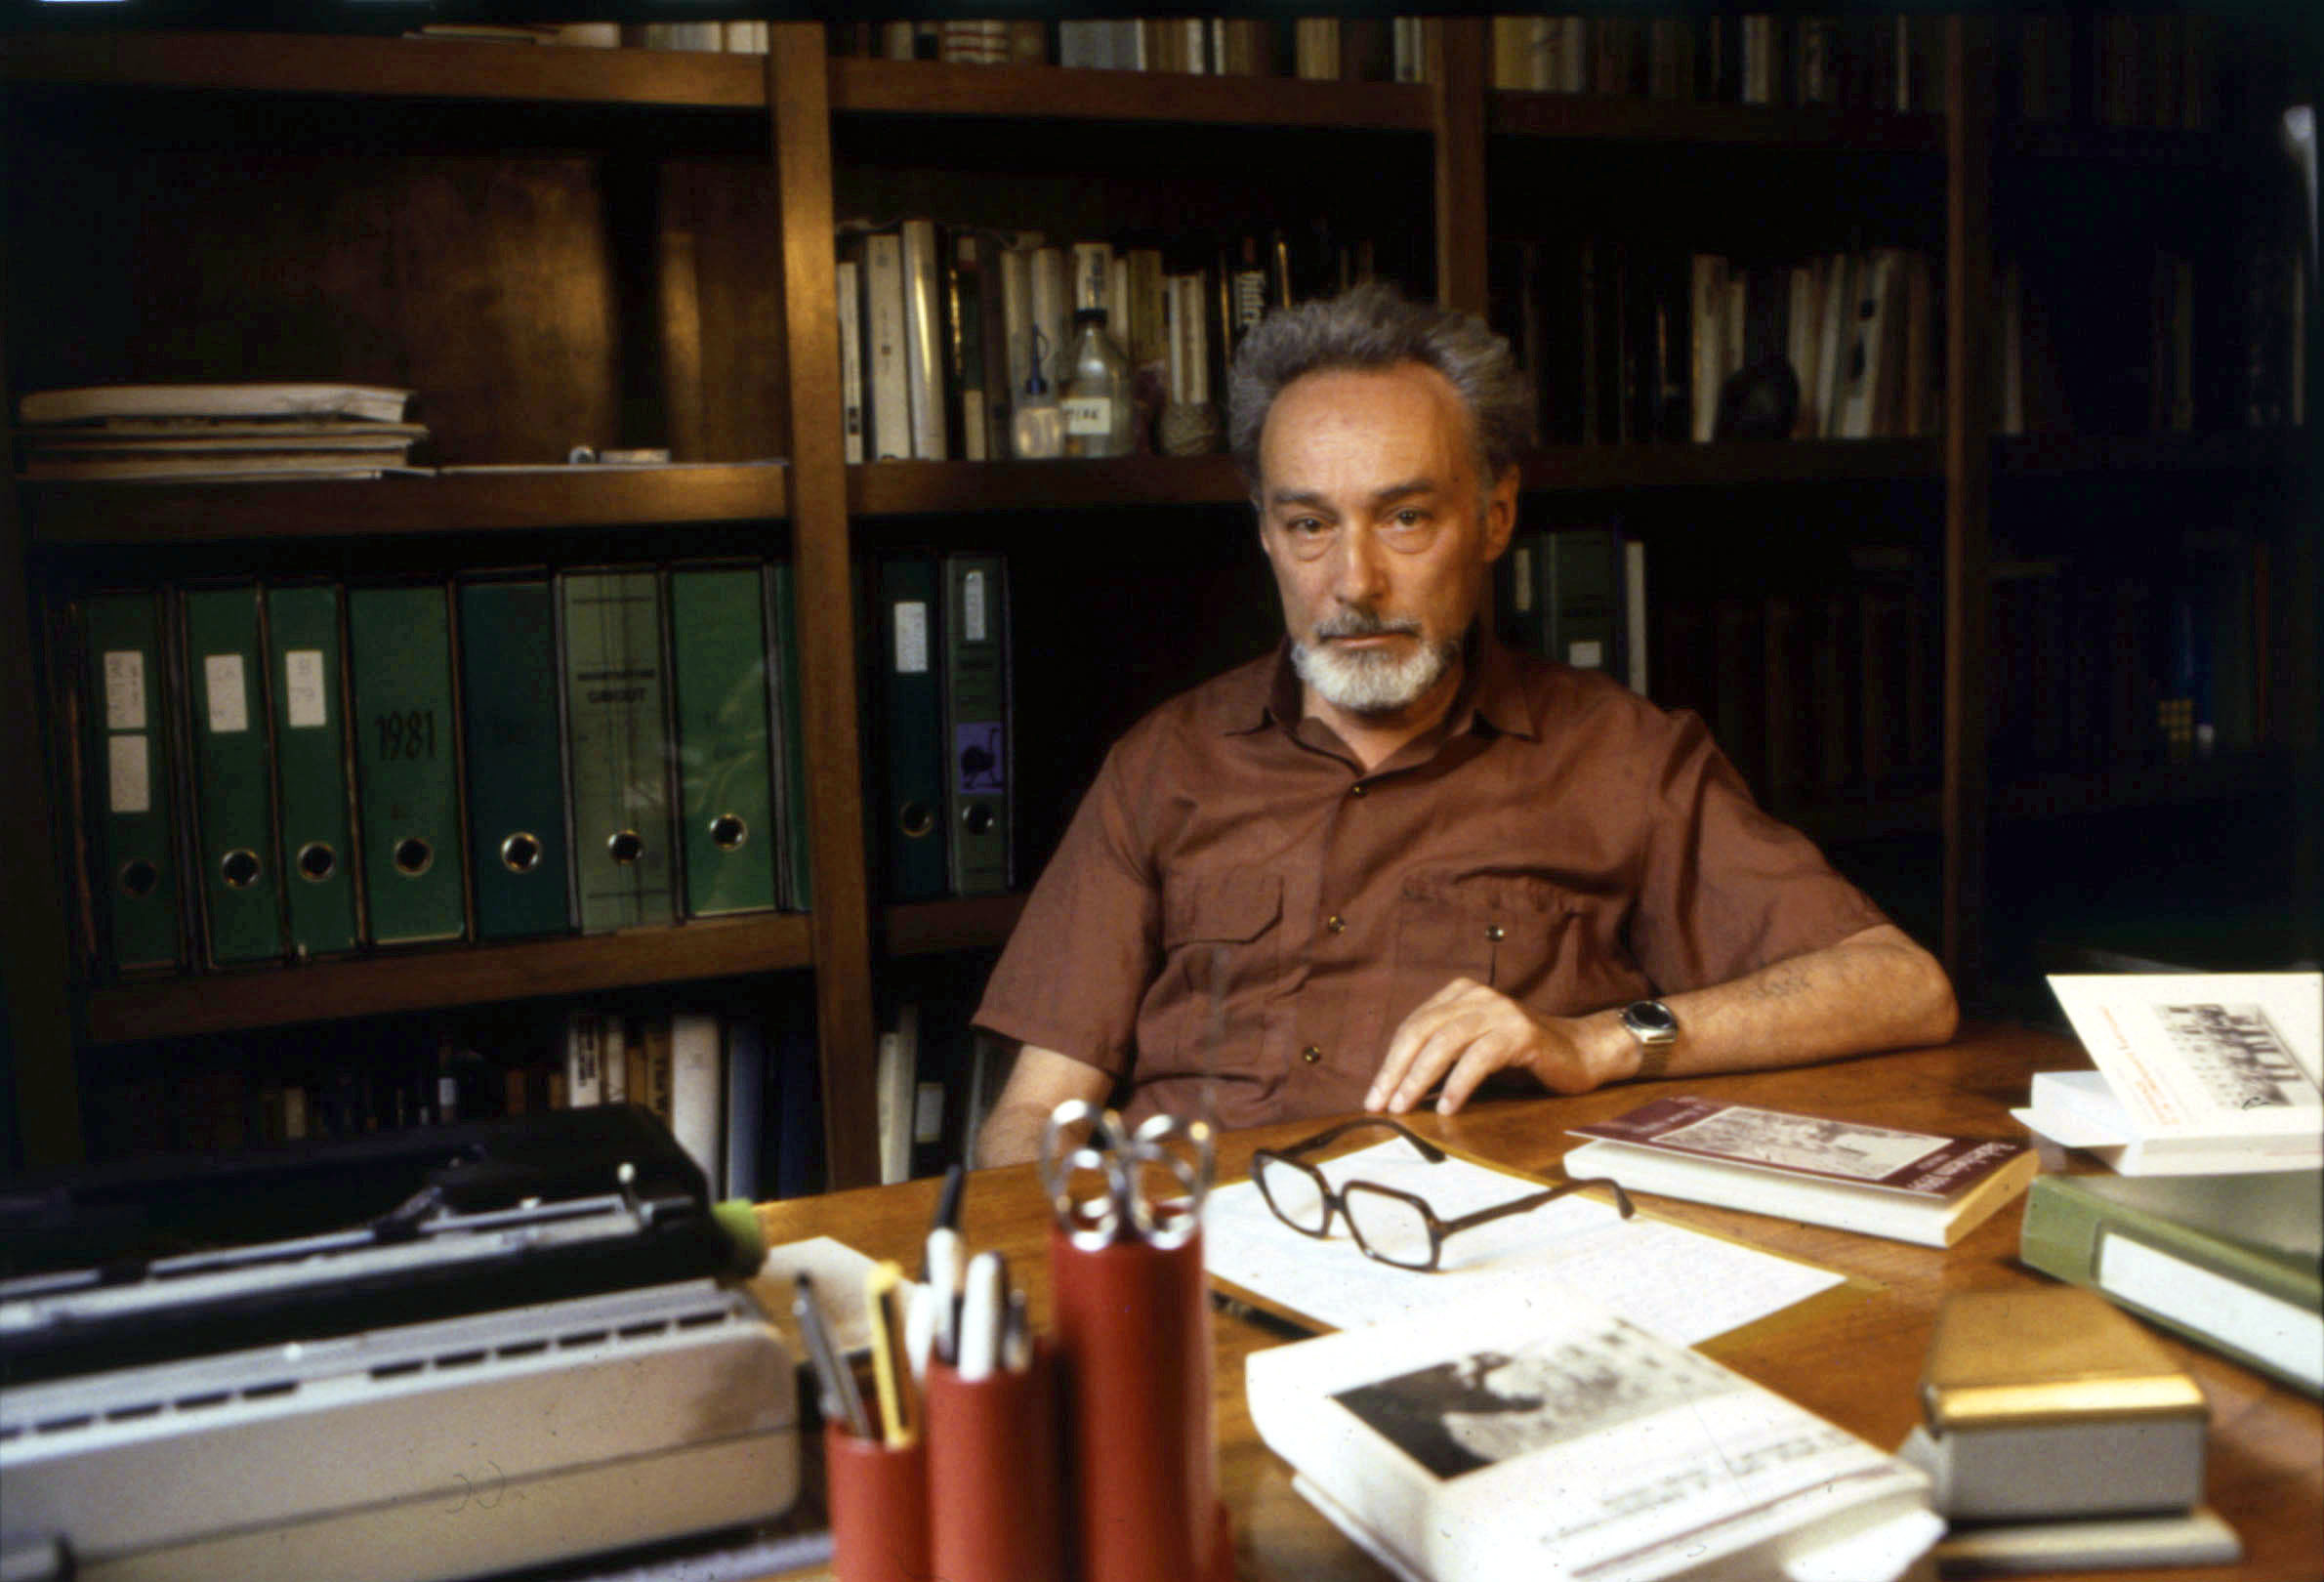 Italian writer Primo Levi sitting at a desk in his study. Turin, 1981. (Photo by Sergio del GrandeMondadori PortfolioMondadori Portfolio via Getty Images)